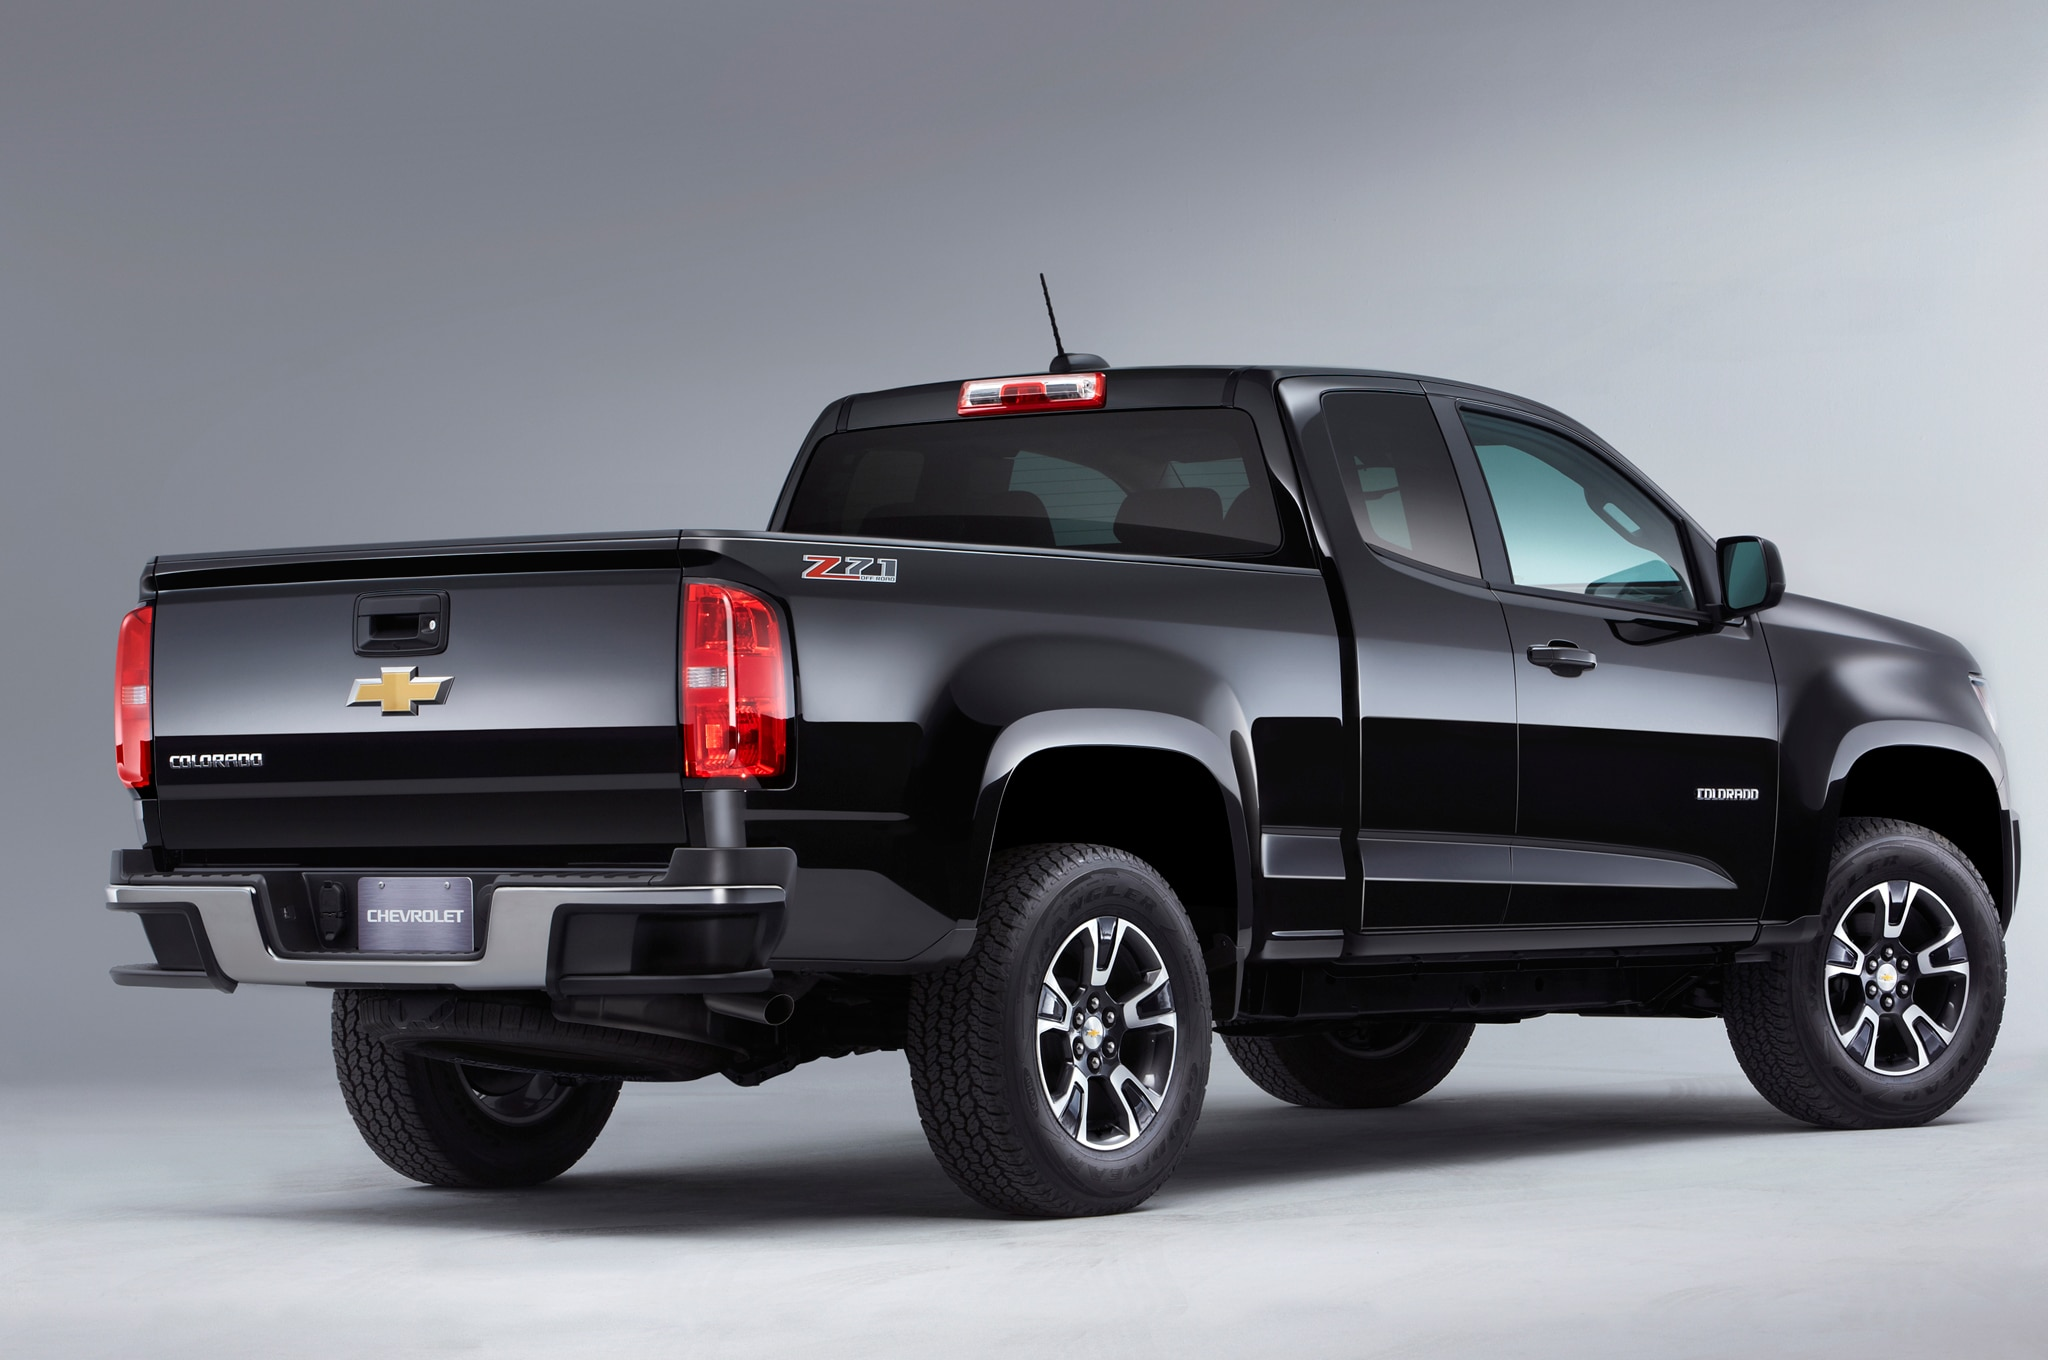 2015 Chevrolet Colorado Z71 rear three quarters